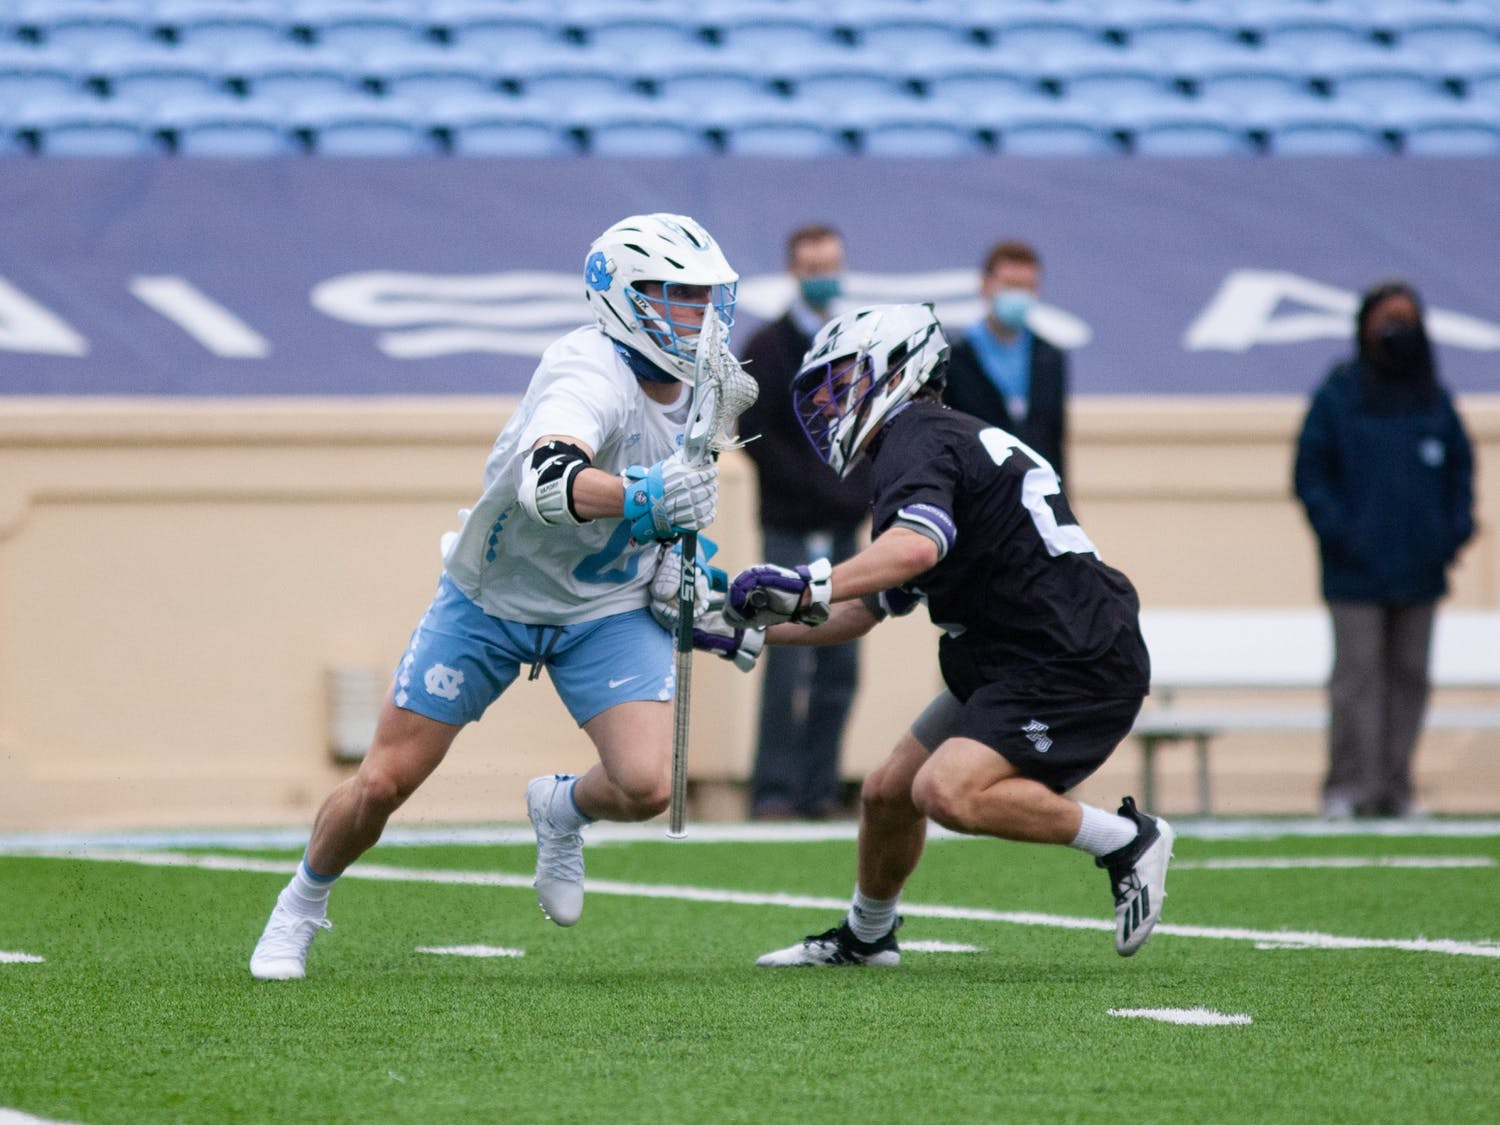 Sophomore attackman, Lance Tillman (0) tries to get around a High Point opponent. UNC wins against High Point 27-12 at Kenan Stadium on Saturday, Feb. 27, 2021.